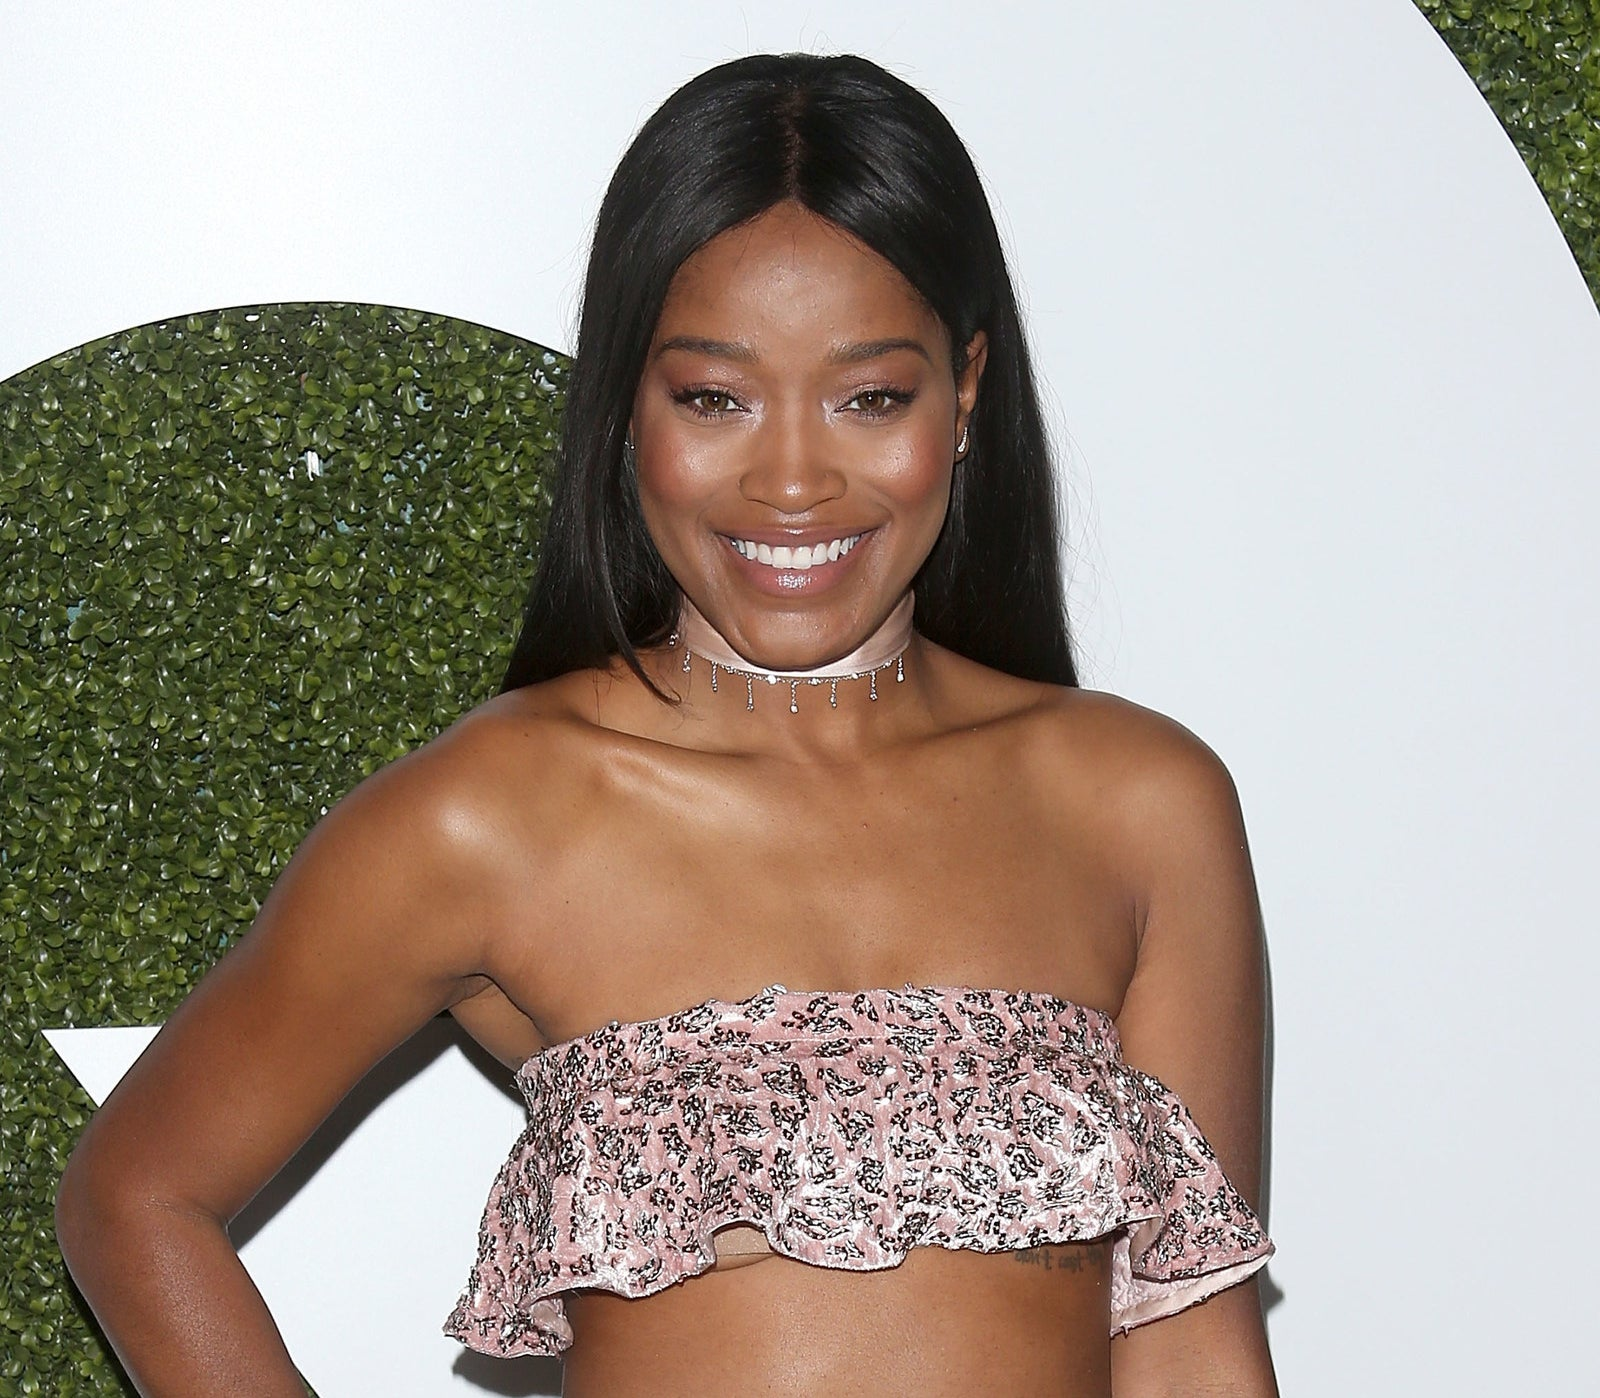 And Keke Palmer is one celebrity making that argument. During a recent interview with Yahoo! Beauty, the 23-year-old actor explained why social media makes it hard to remain authentic.